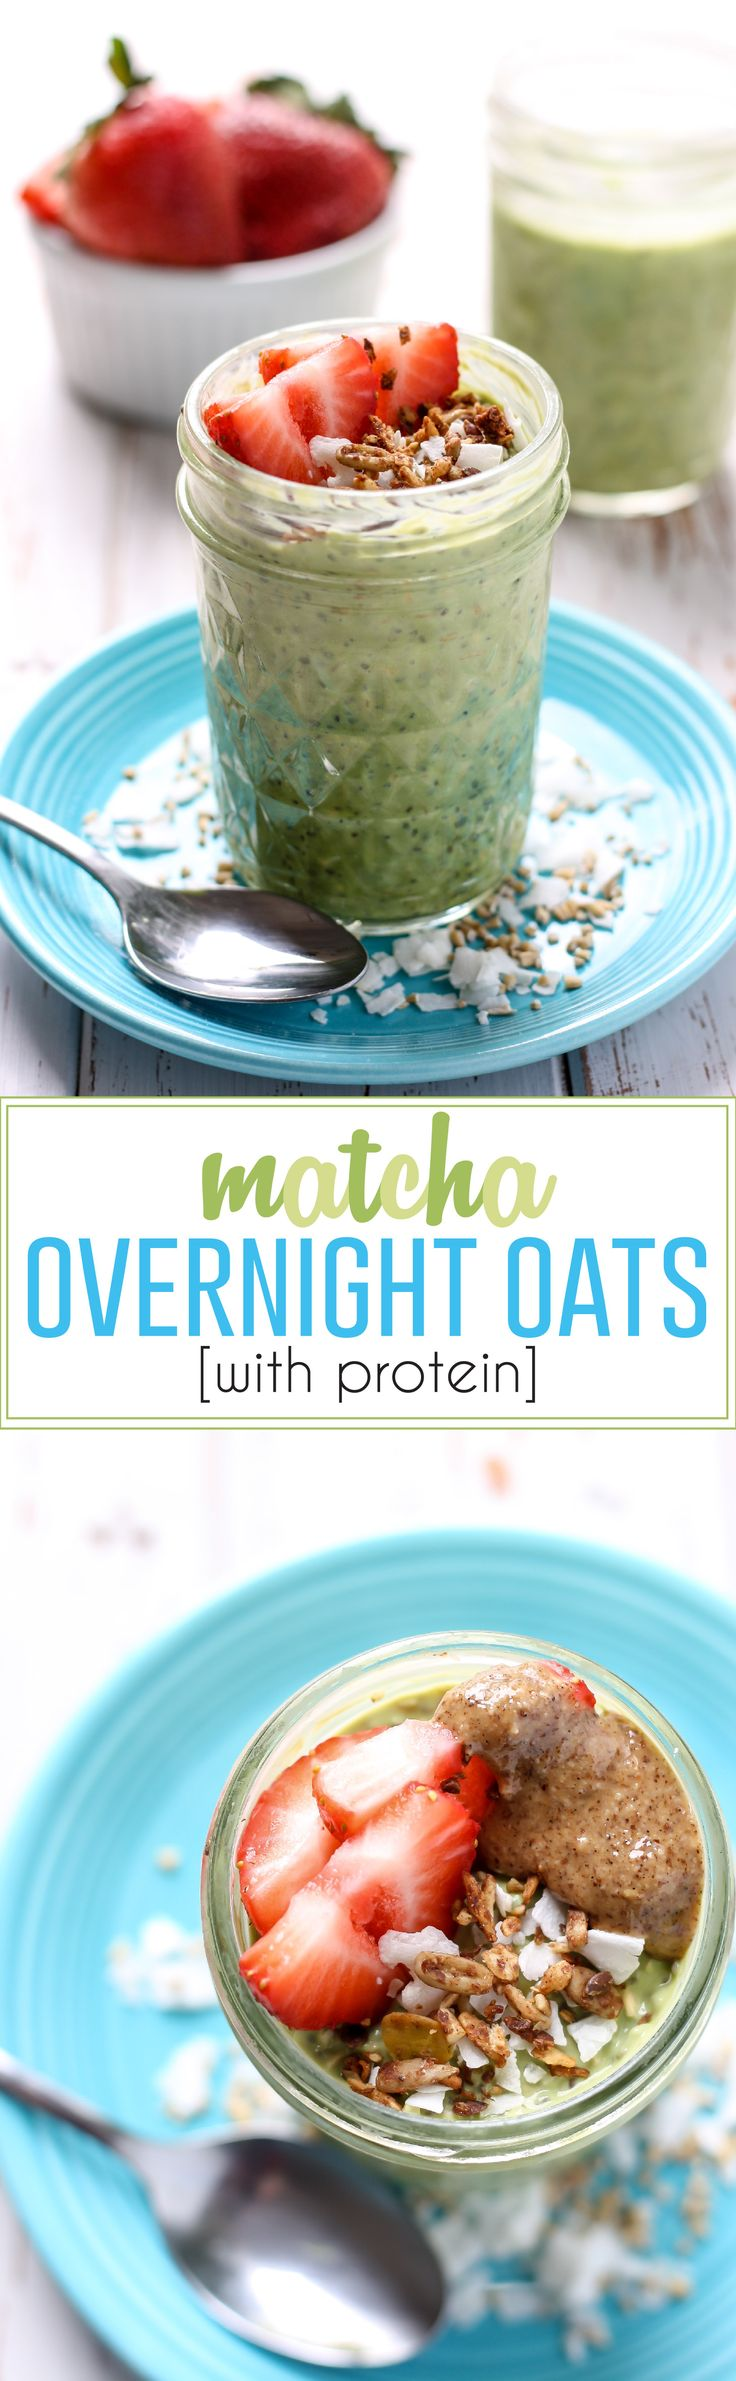 An easy, make-ahead breakfast, these Matcha Overnight Oats use steel cut oats, yogurt, chia seeds, and protein powder for a meal that will keep you full for hours. Plus you get the health benefits of matcha green tea!